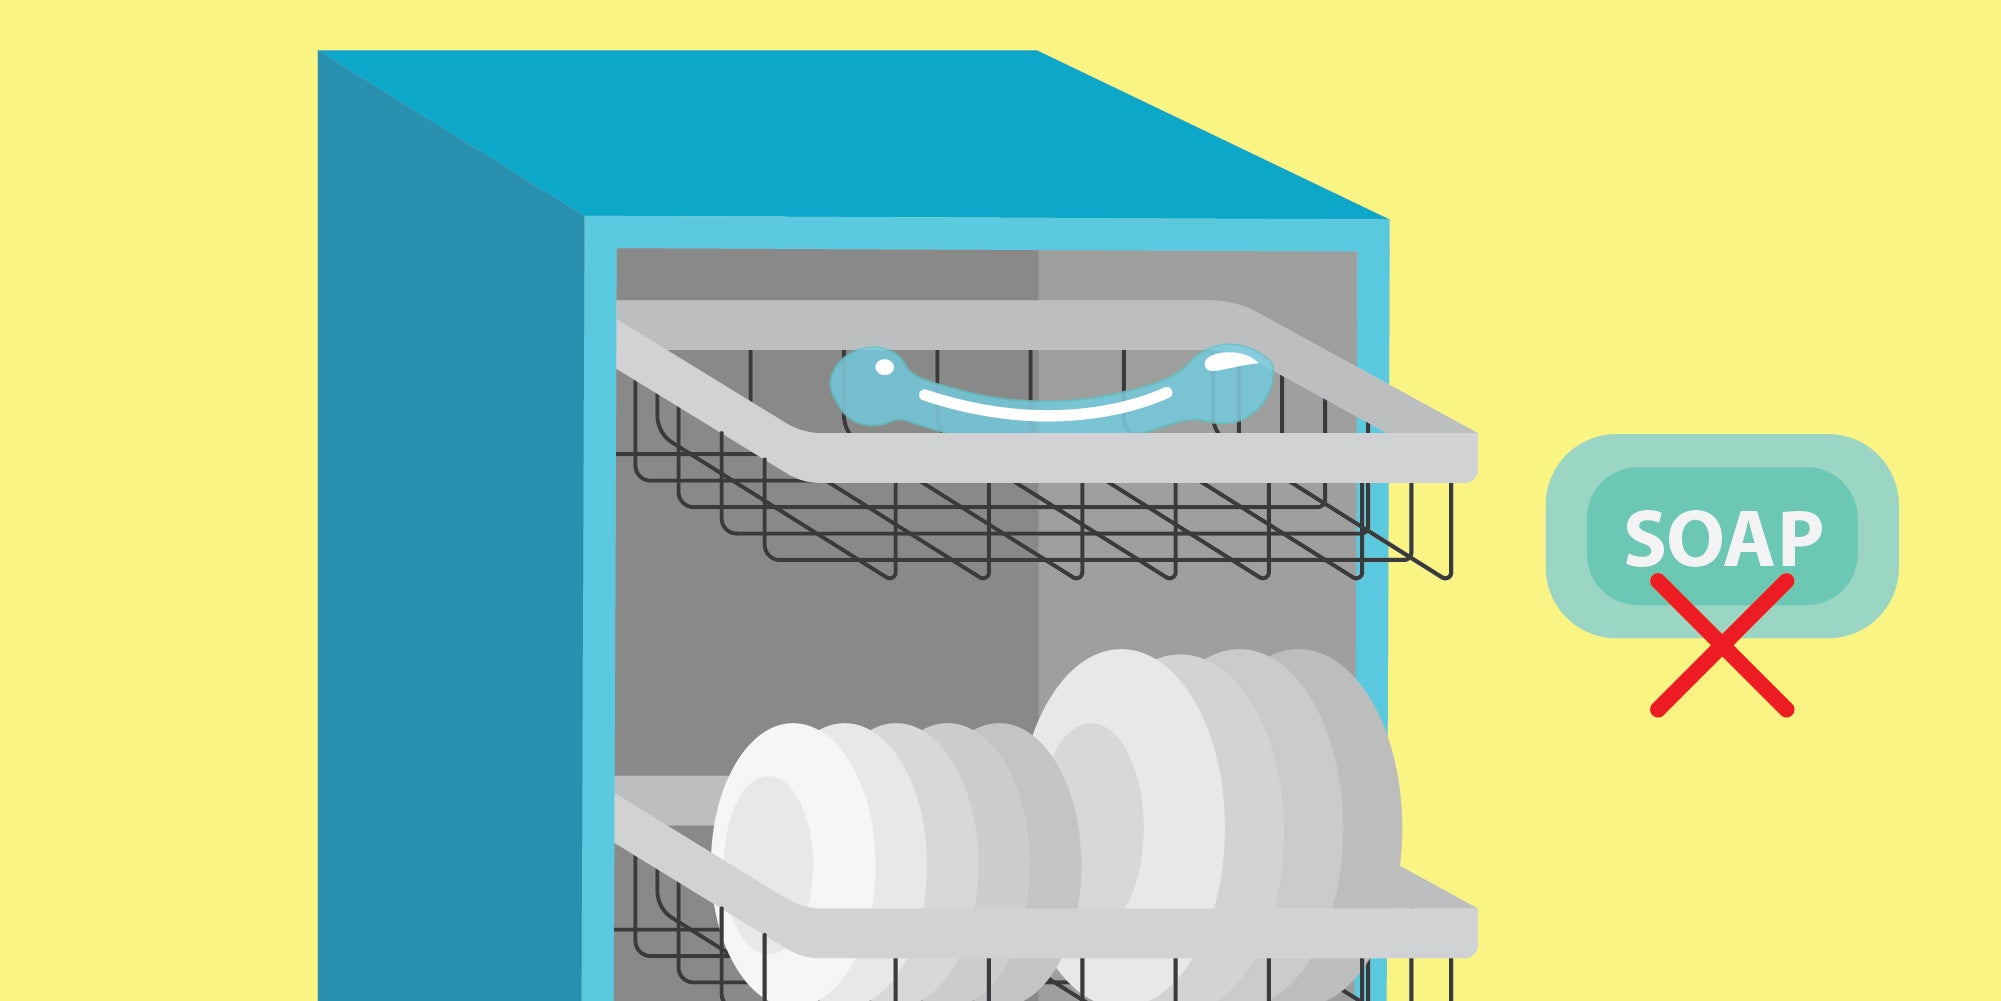 It is safe to deep clean your glass sex toys in the dishwasher.